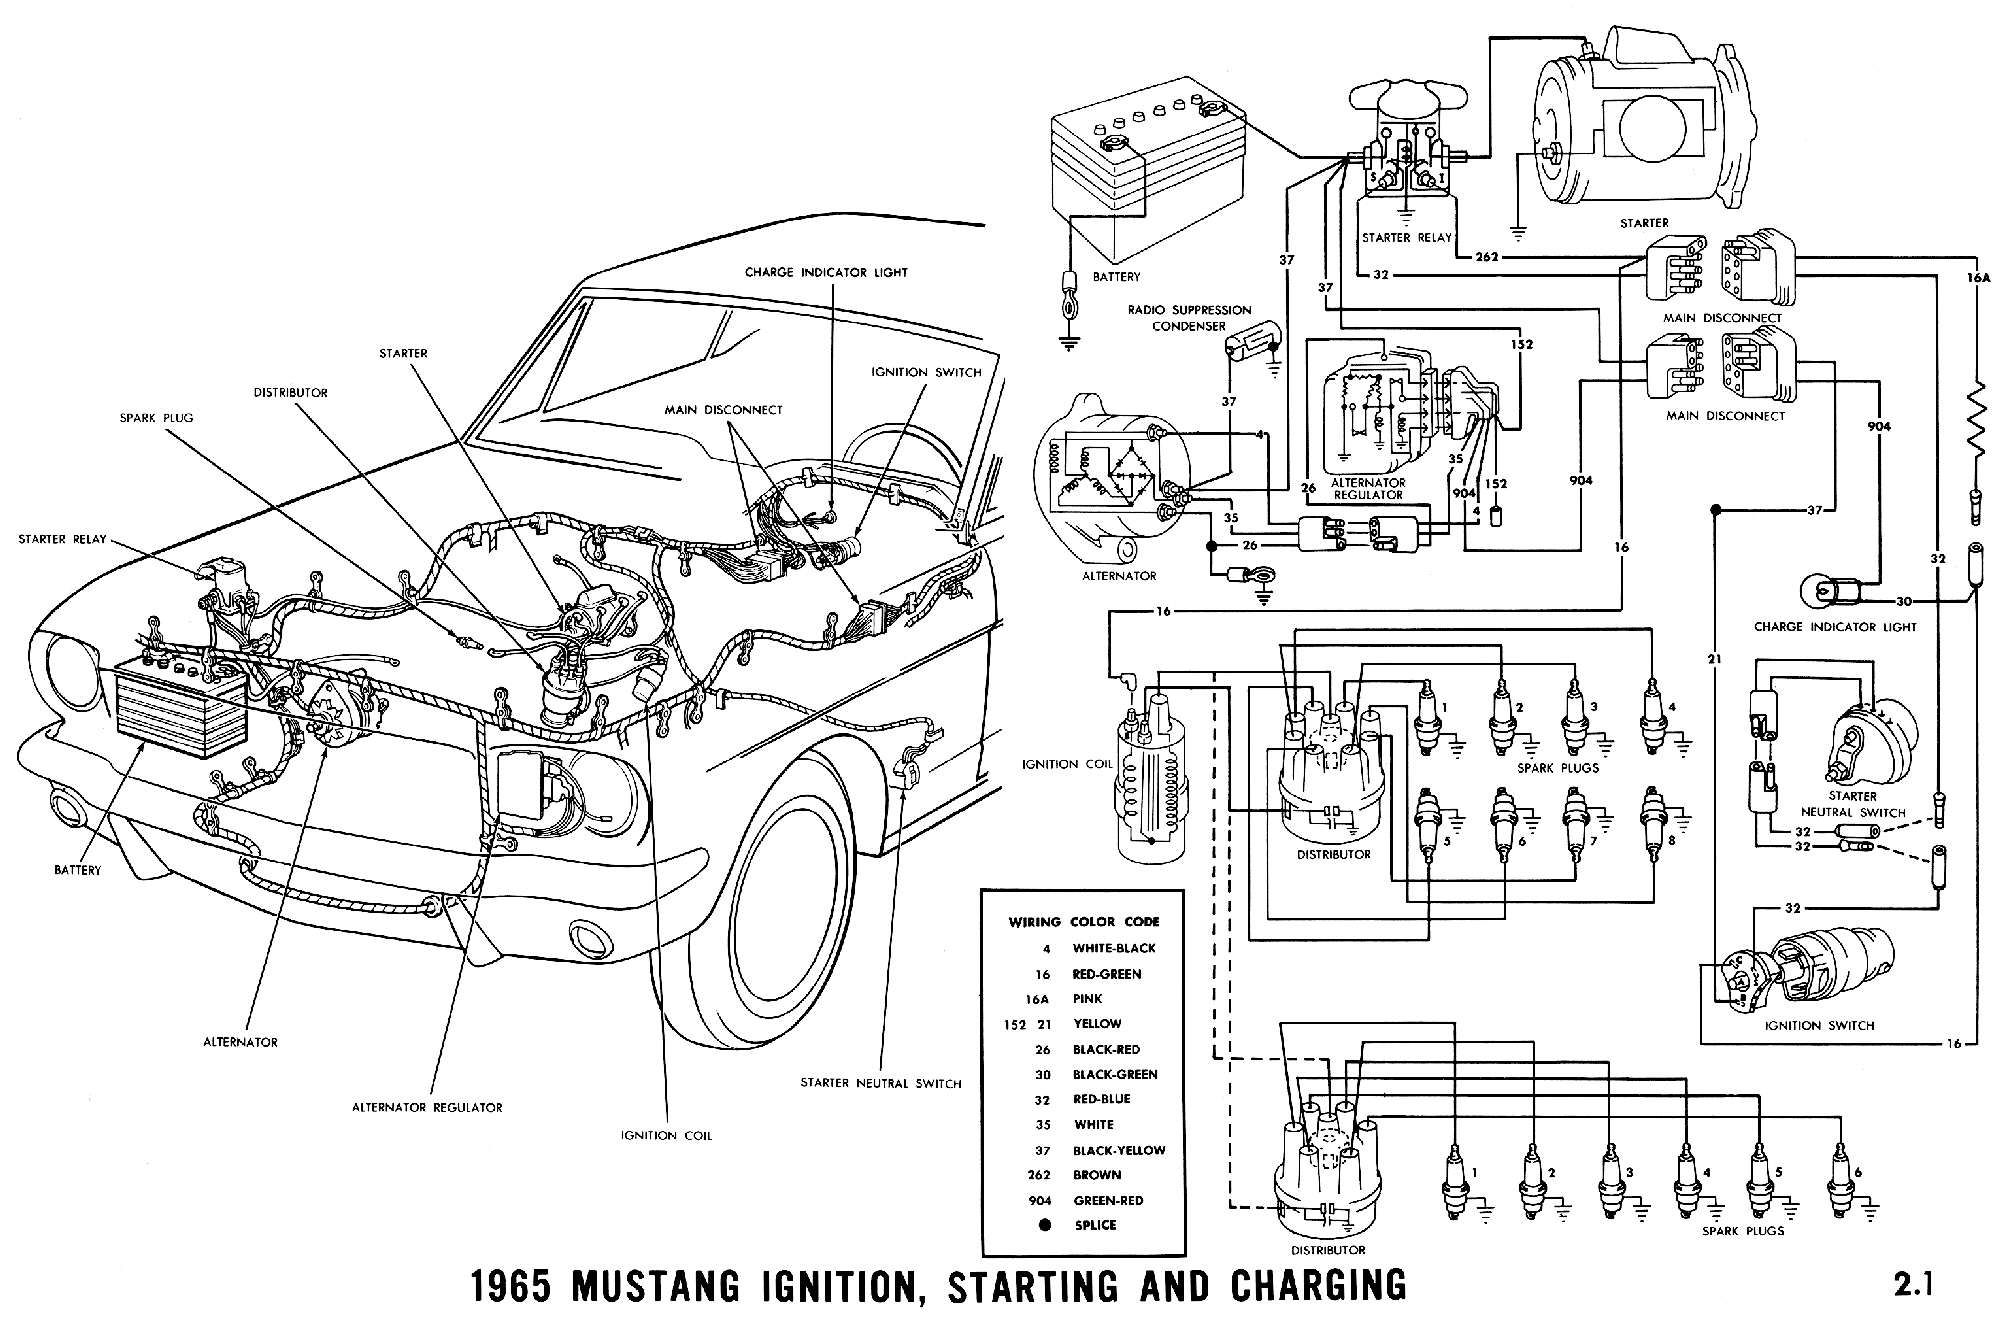 1965 mustang wiper wiring diagram